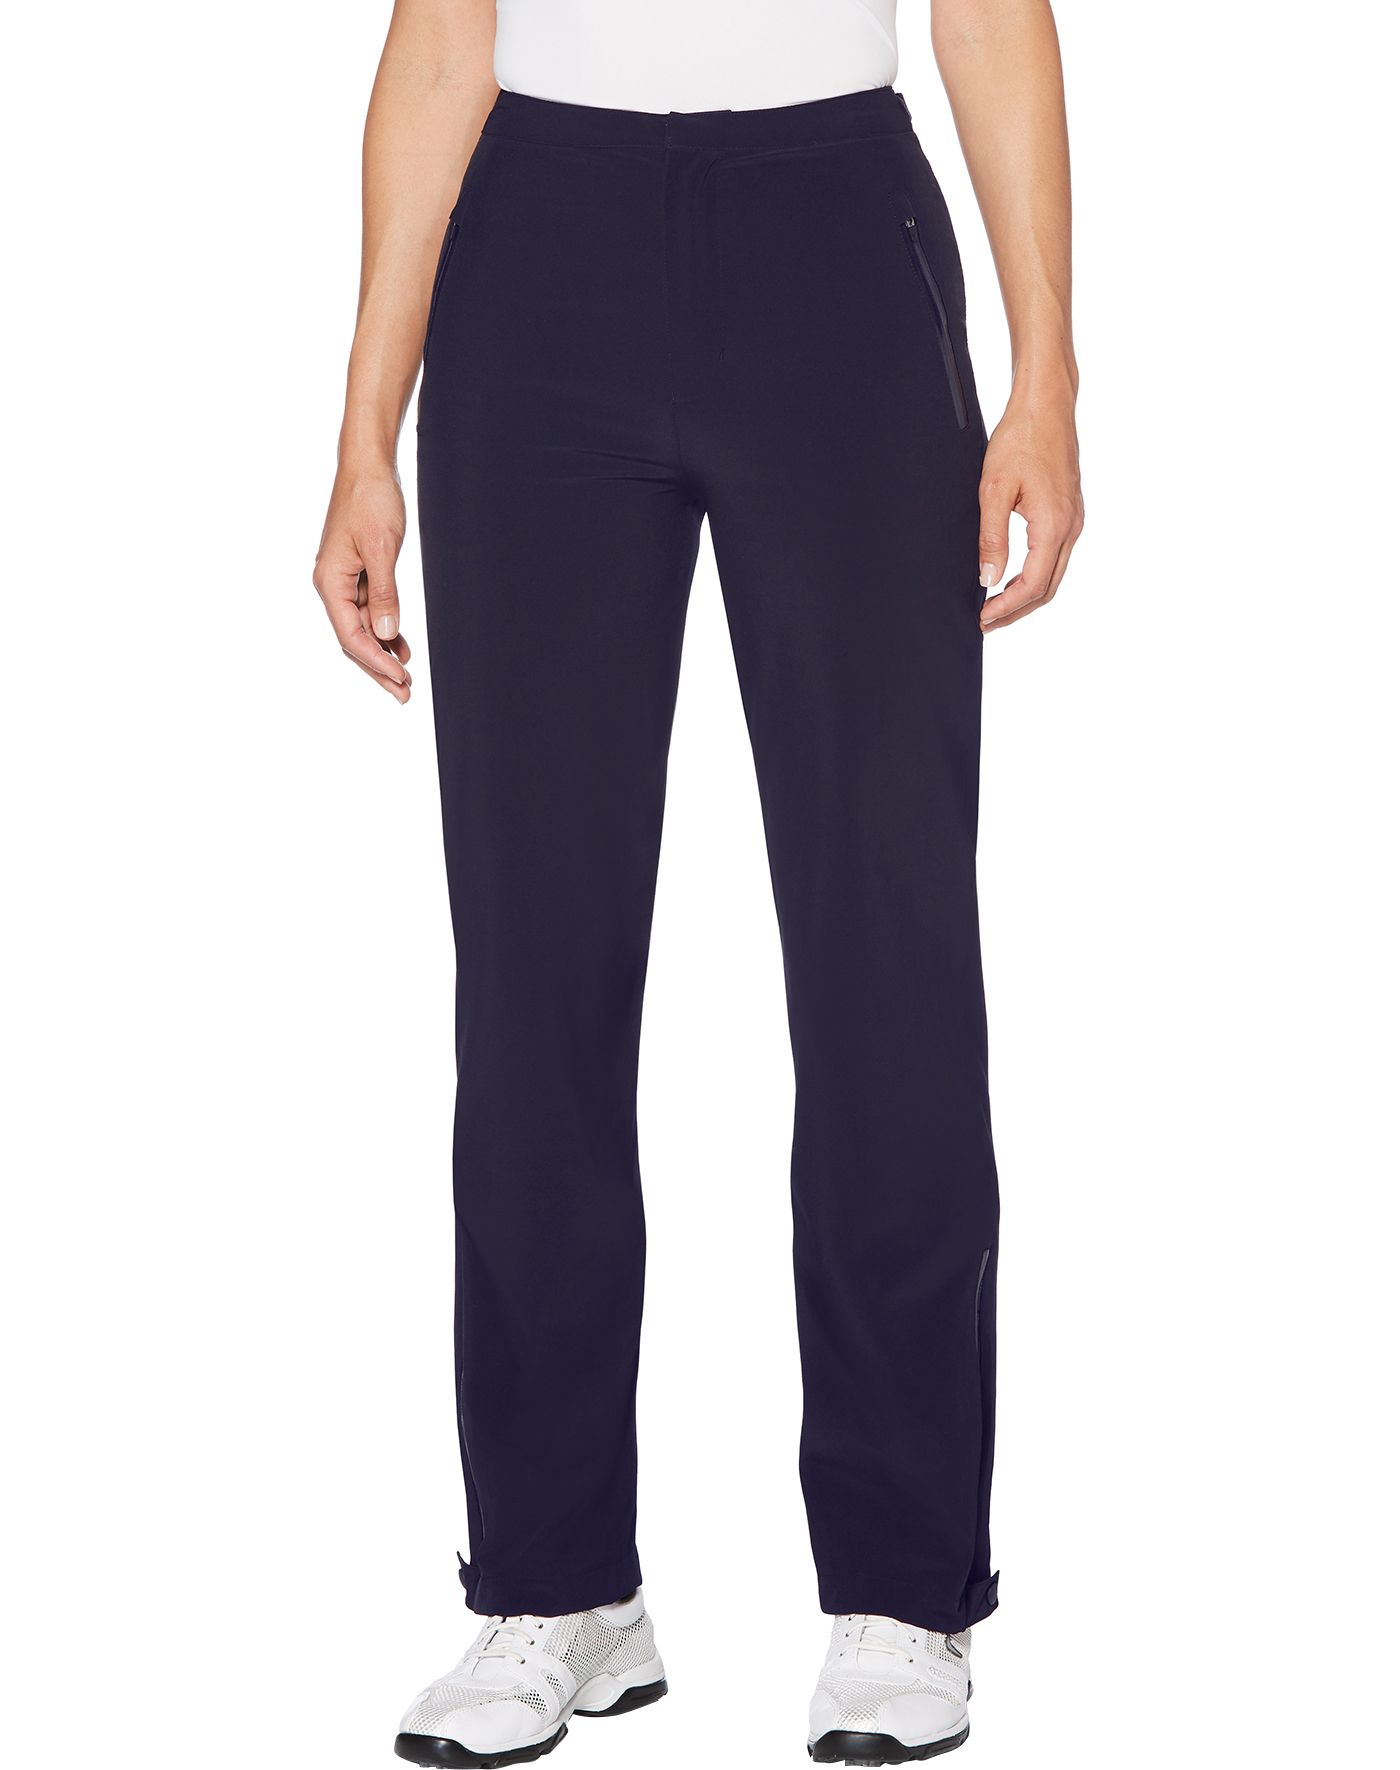 Callaway Women's Waterproof Golf Pants